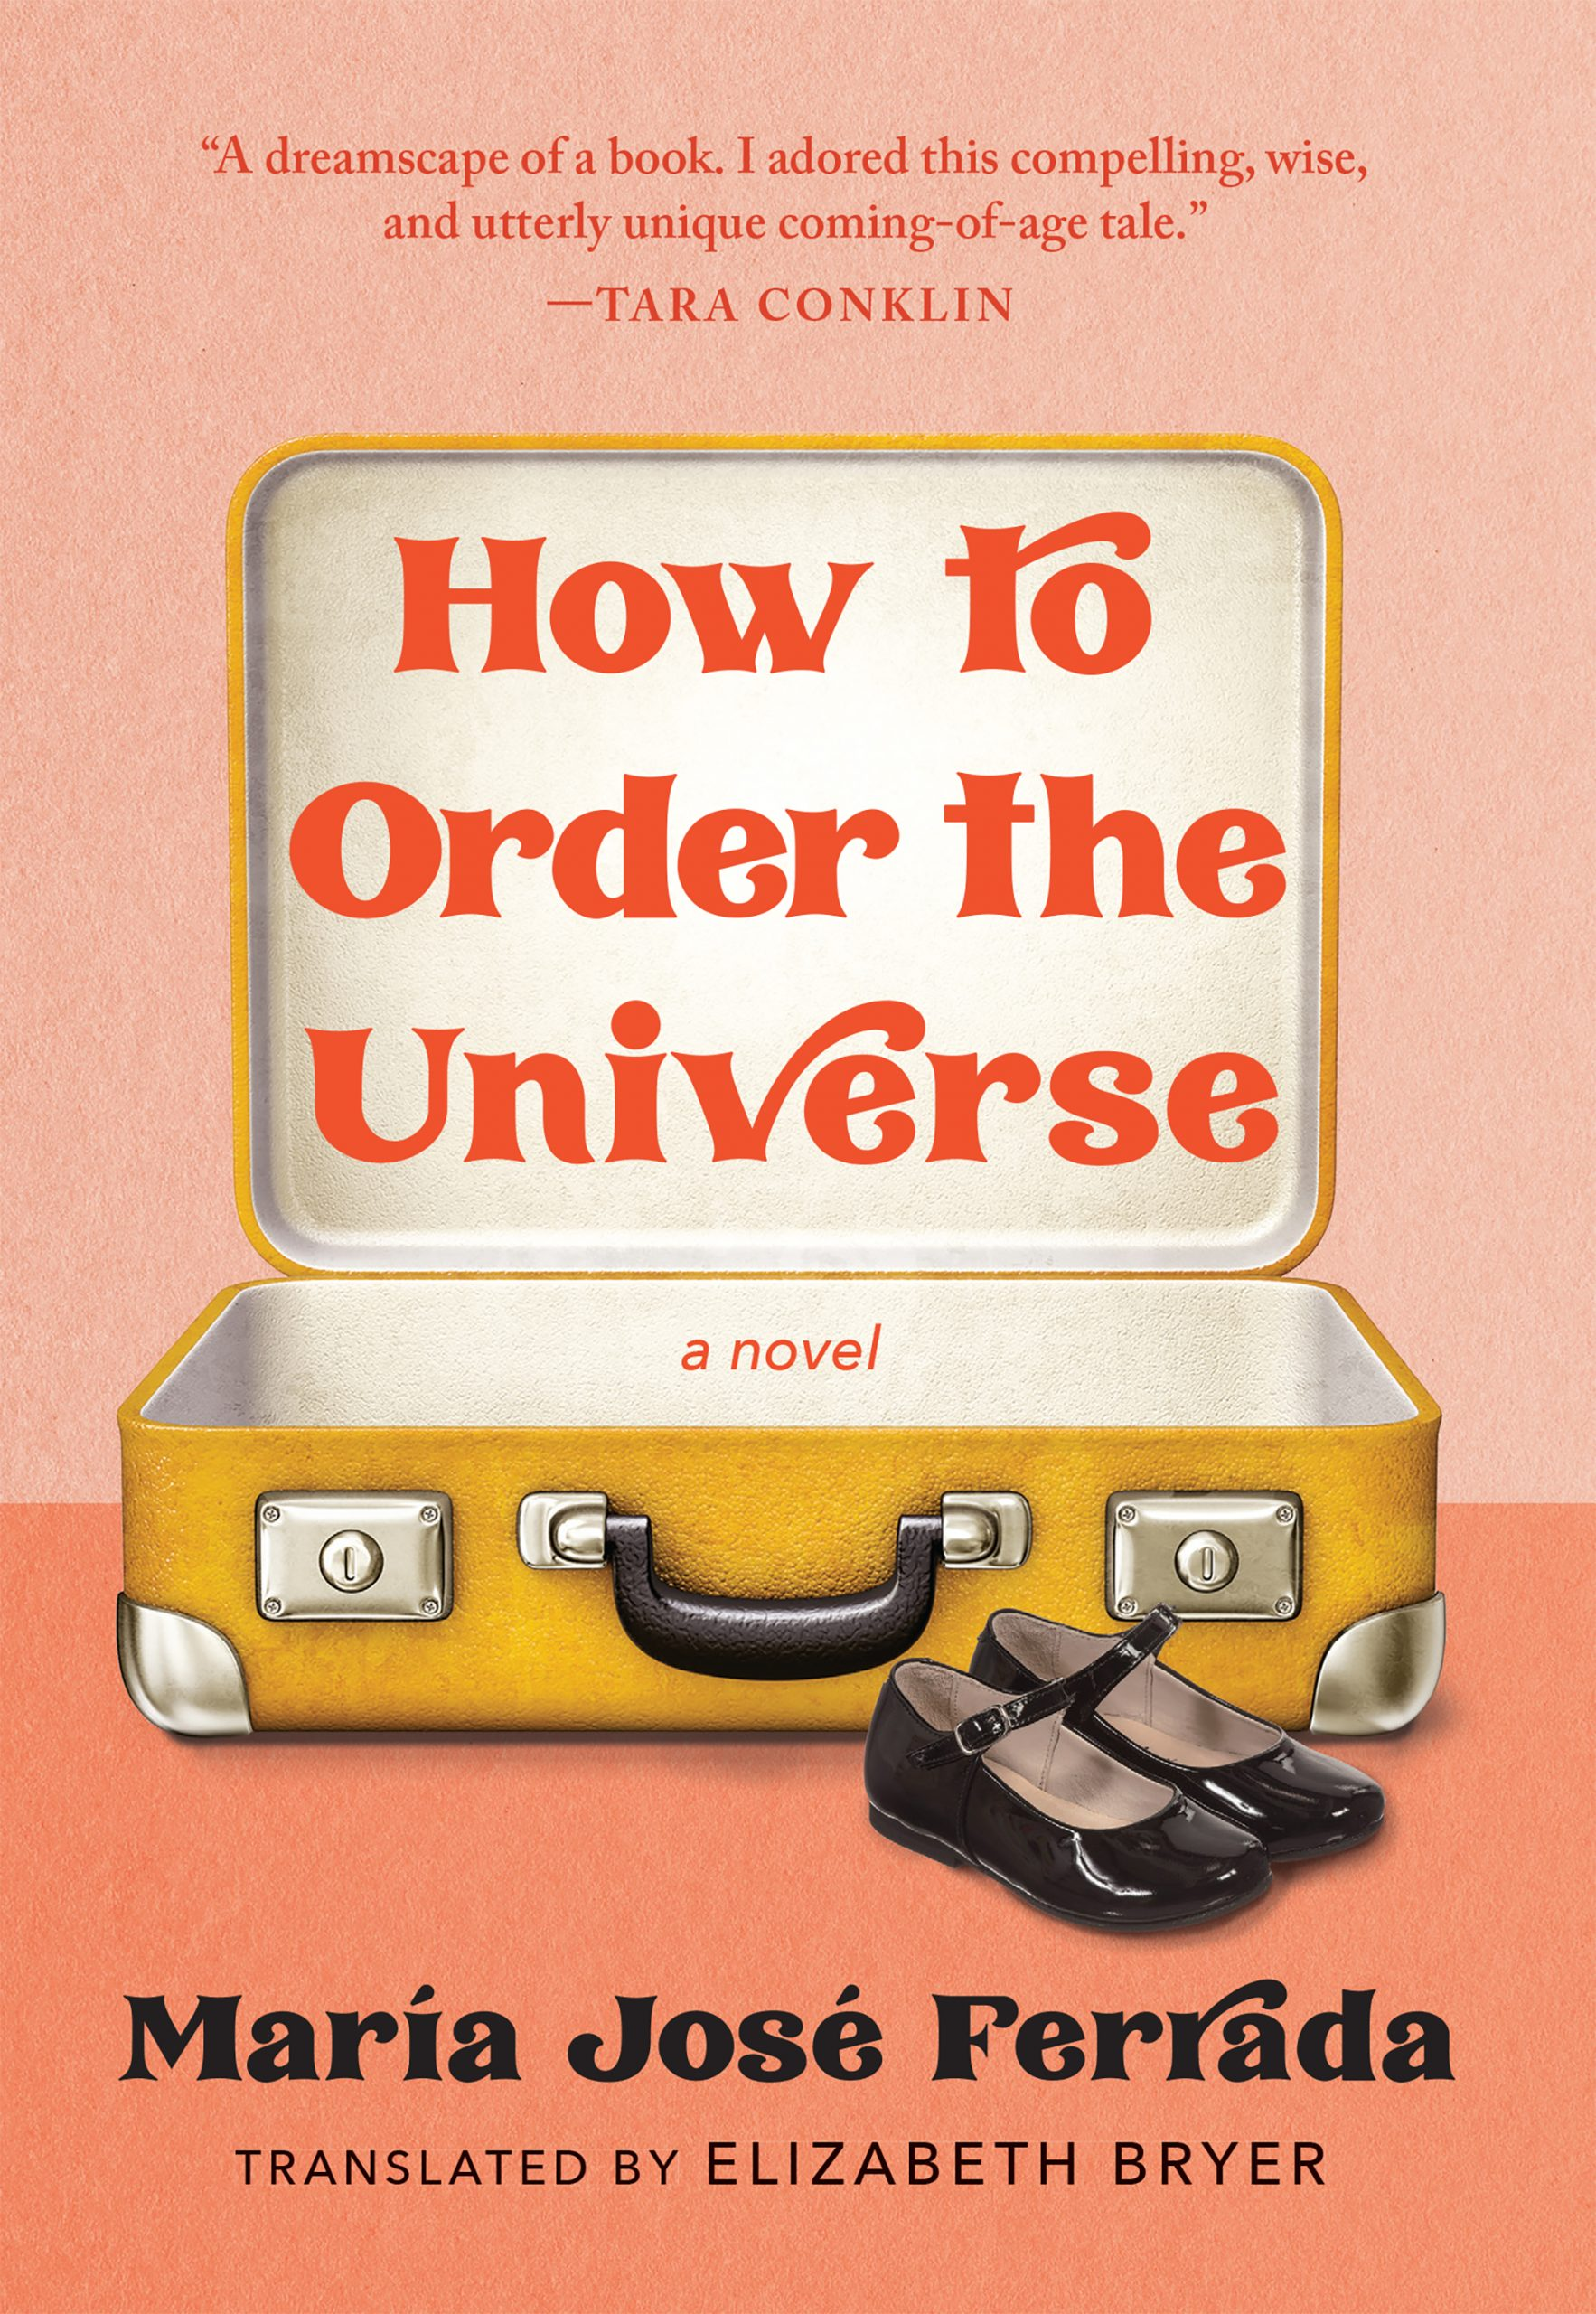 Book cover for How to Order the Universe.